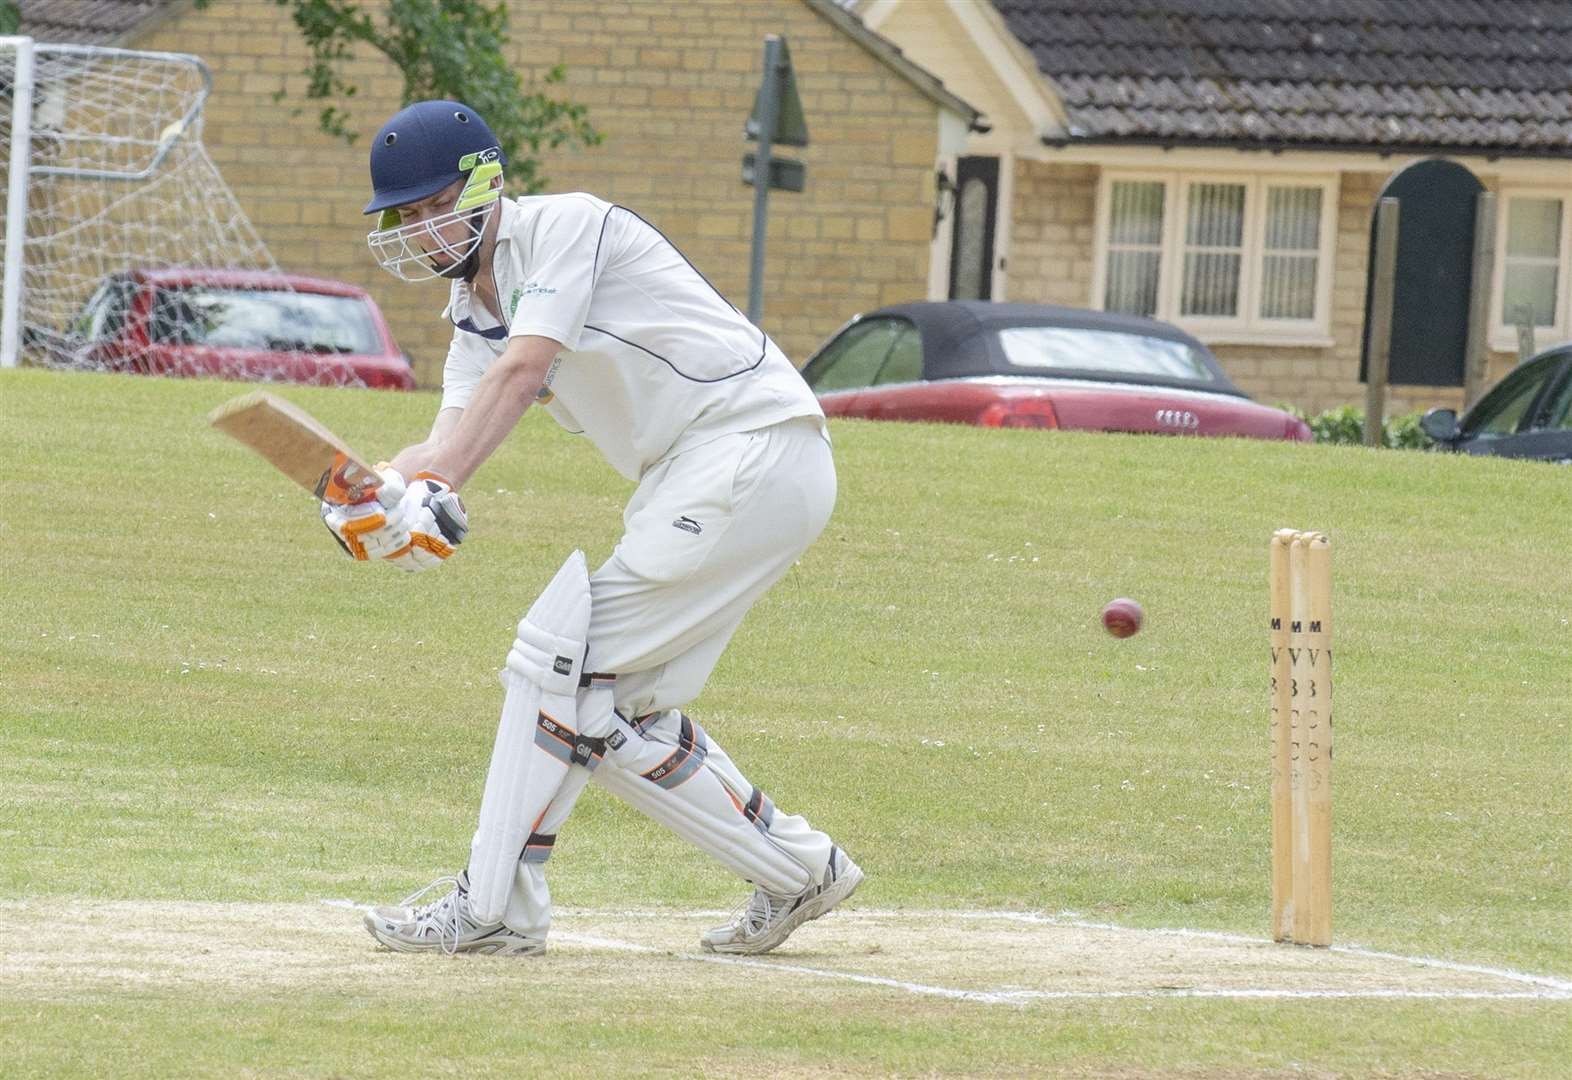 LEICESTERSHIRE LEAGUE ROUND-UP: Rowe hits second successive century for table-topping Ketton Sports